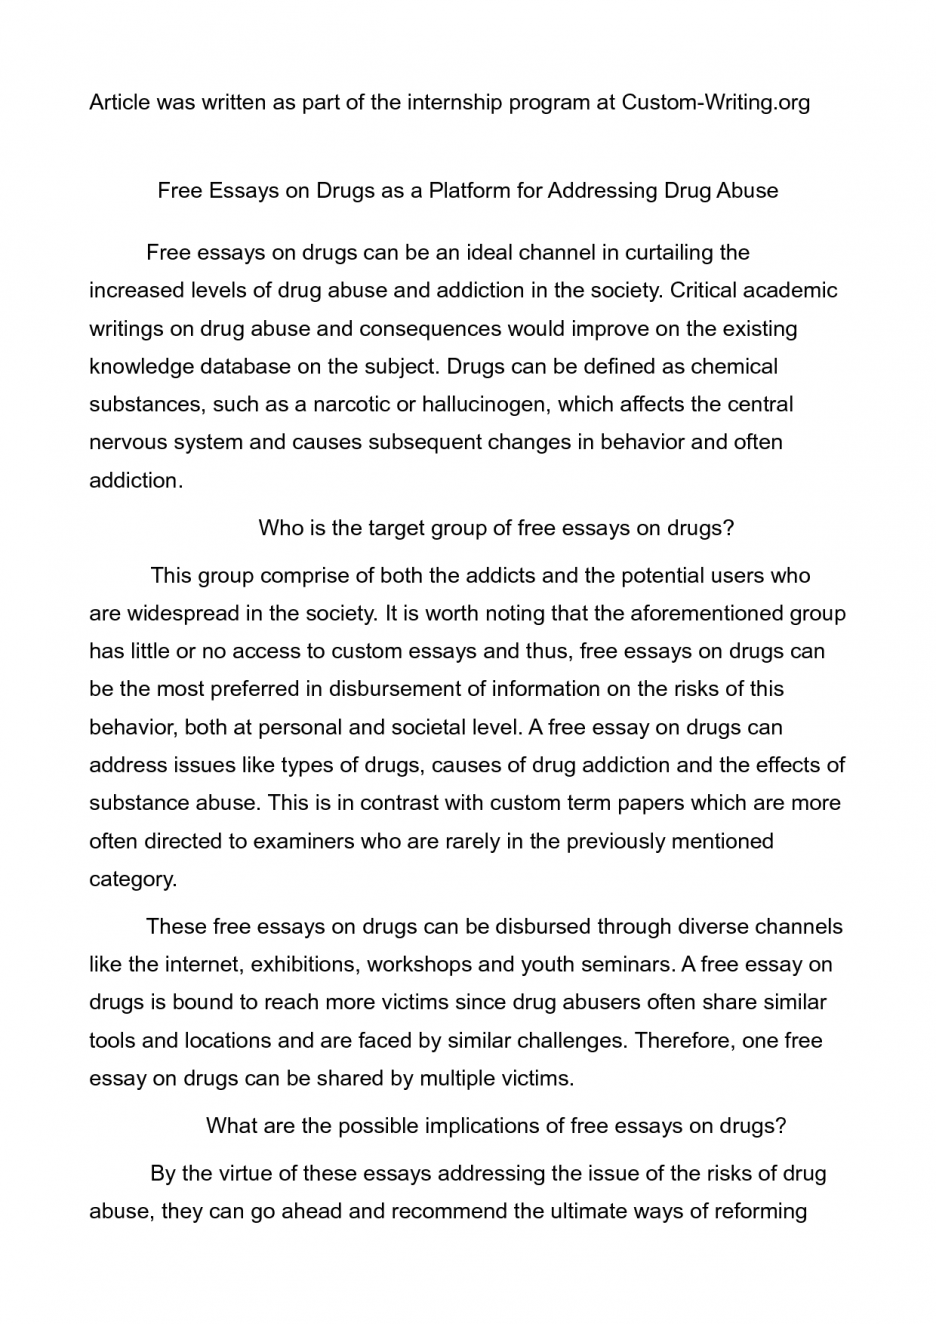 026 Drug Essays Essay About Drugs Anti Day Legalization Of Against To Campaign 936x1324 Stirring Short Tagalog Persuasive Illegal Argumentative Addiction Full